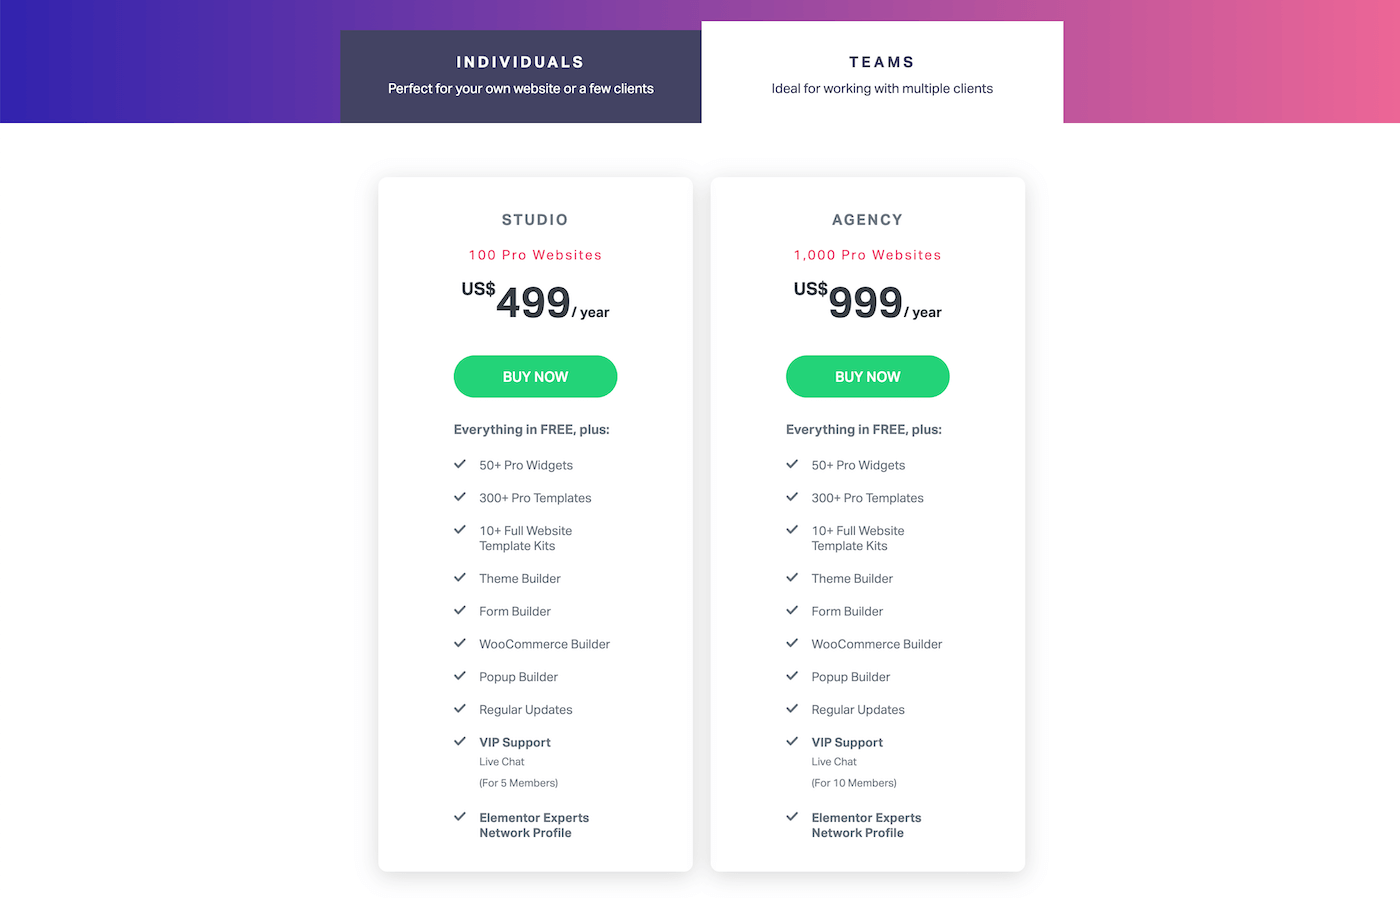 Pricing of Elementor pro for teams